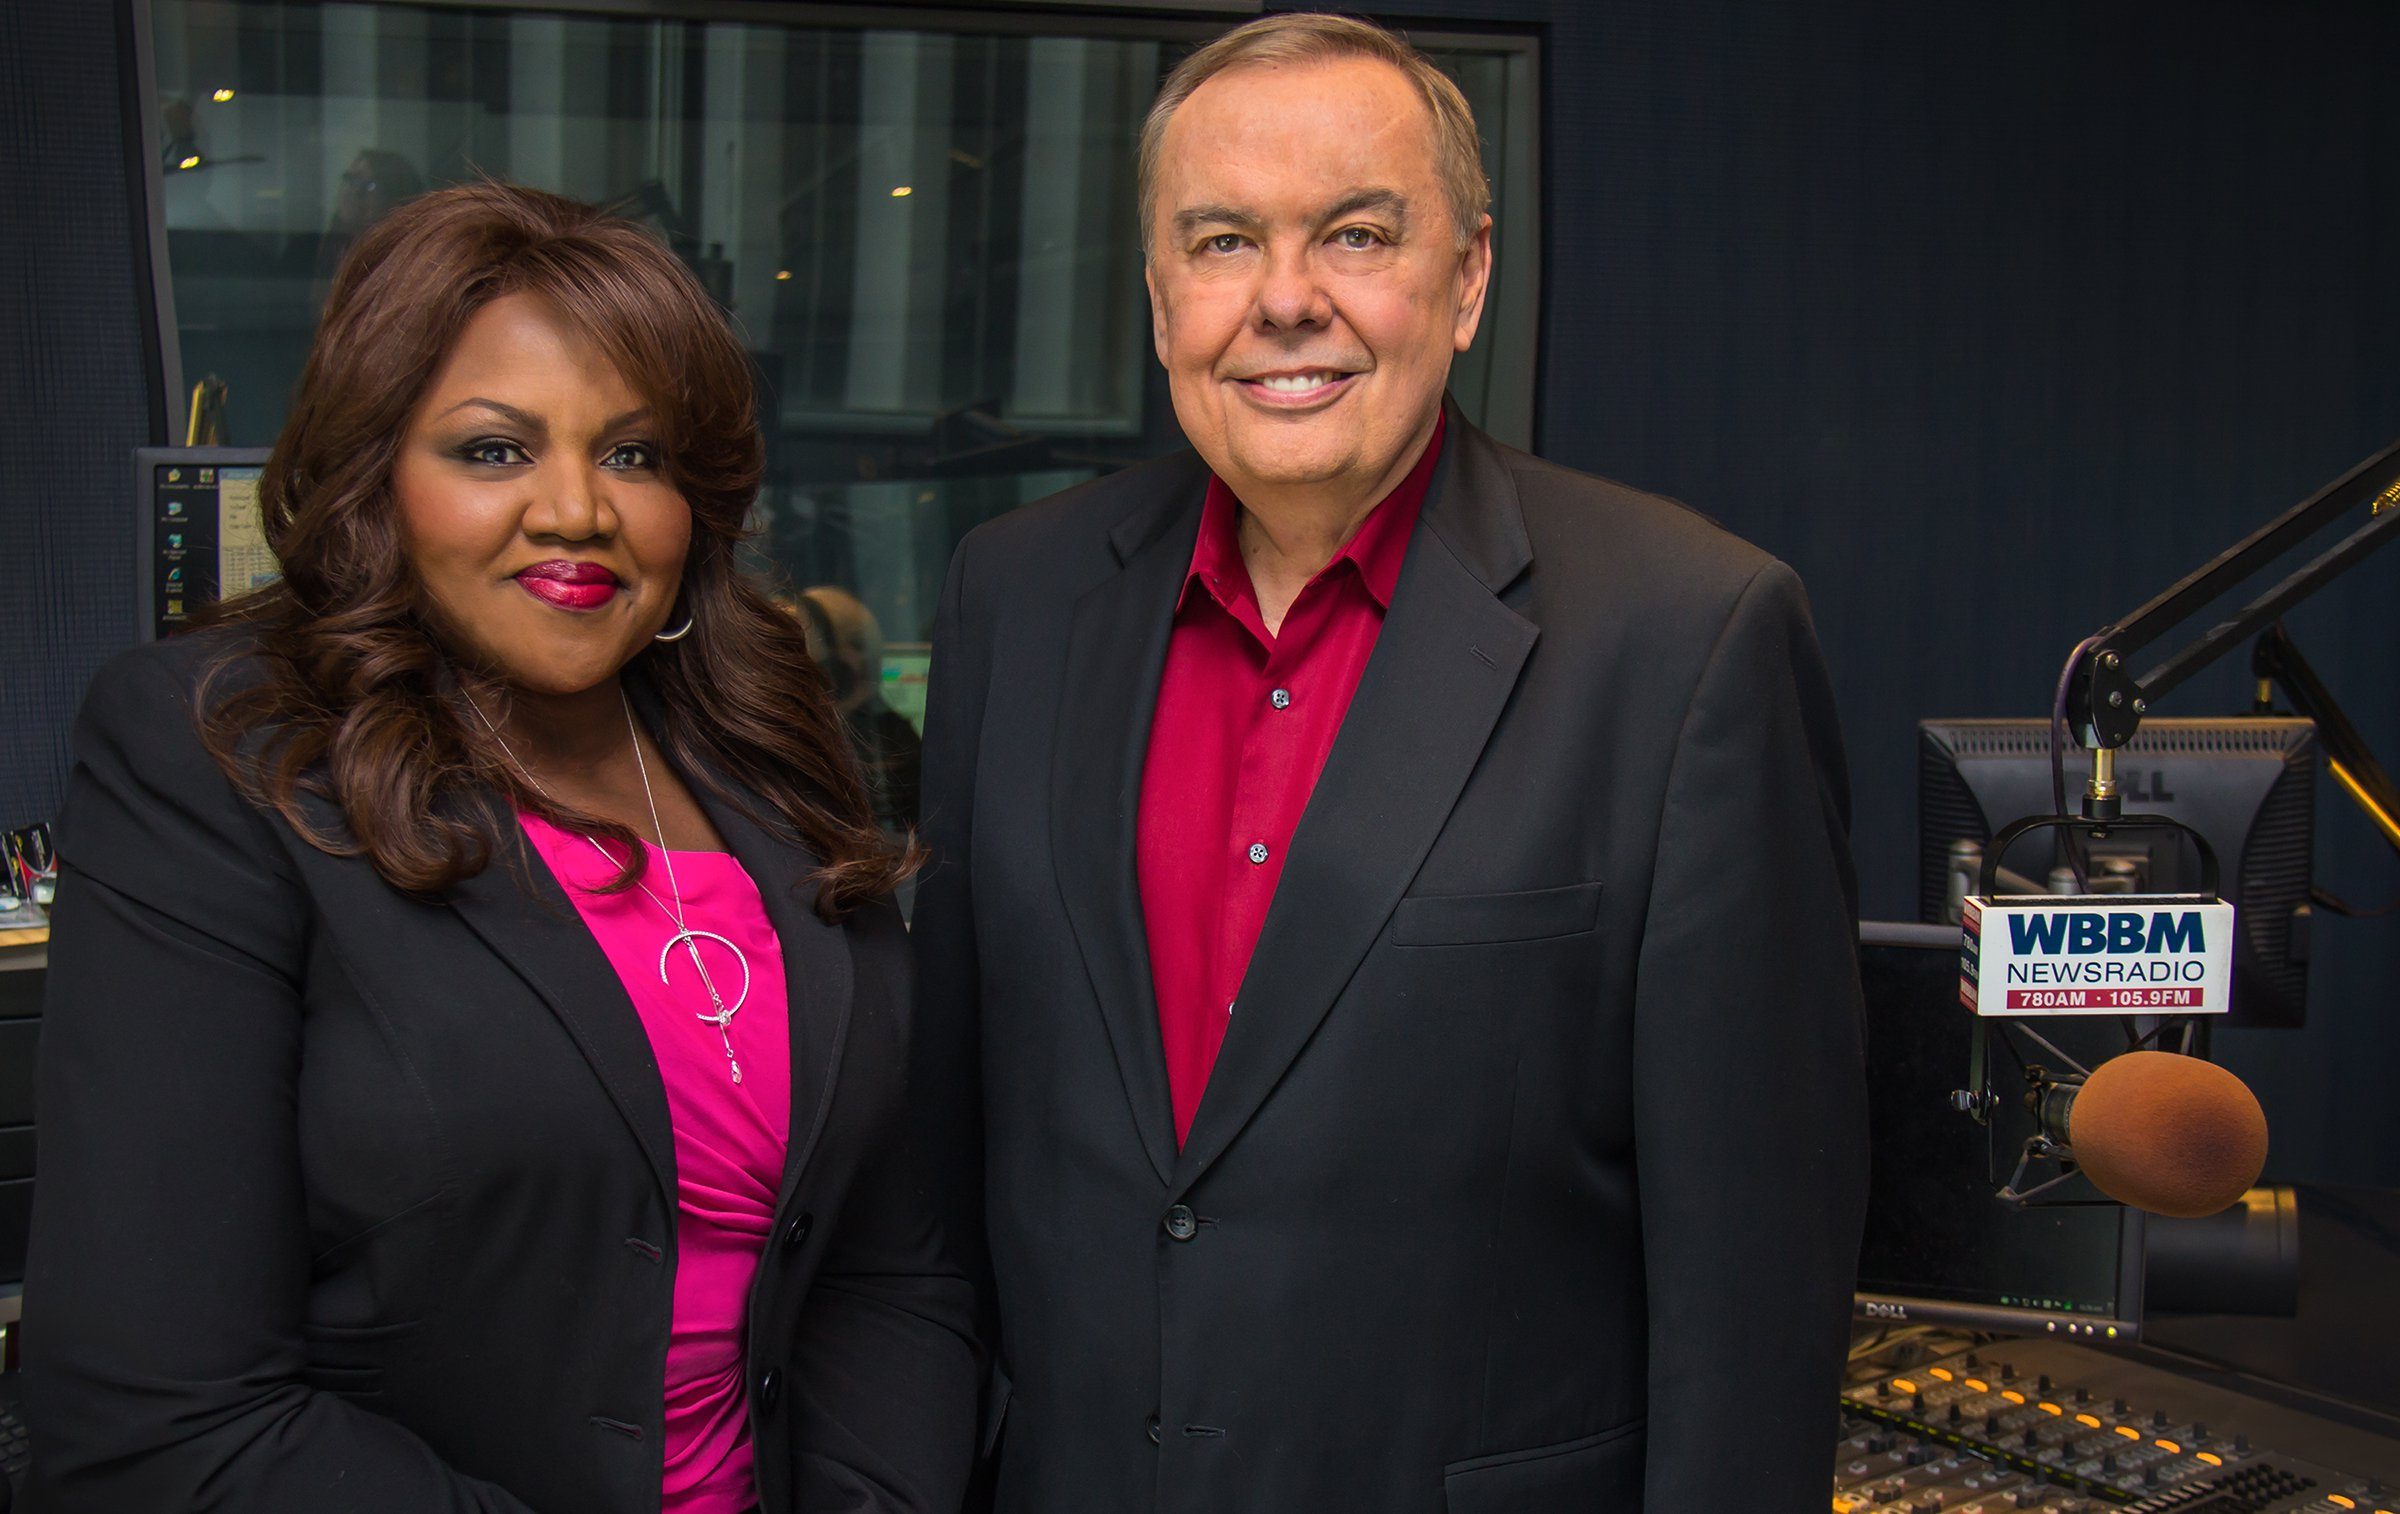 1. Felicia Middlebrooks and Pat Cassidy WBBM AM 780/WCFS FM 105.9 (7.1 share)